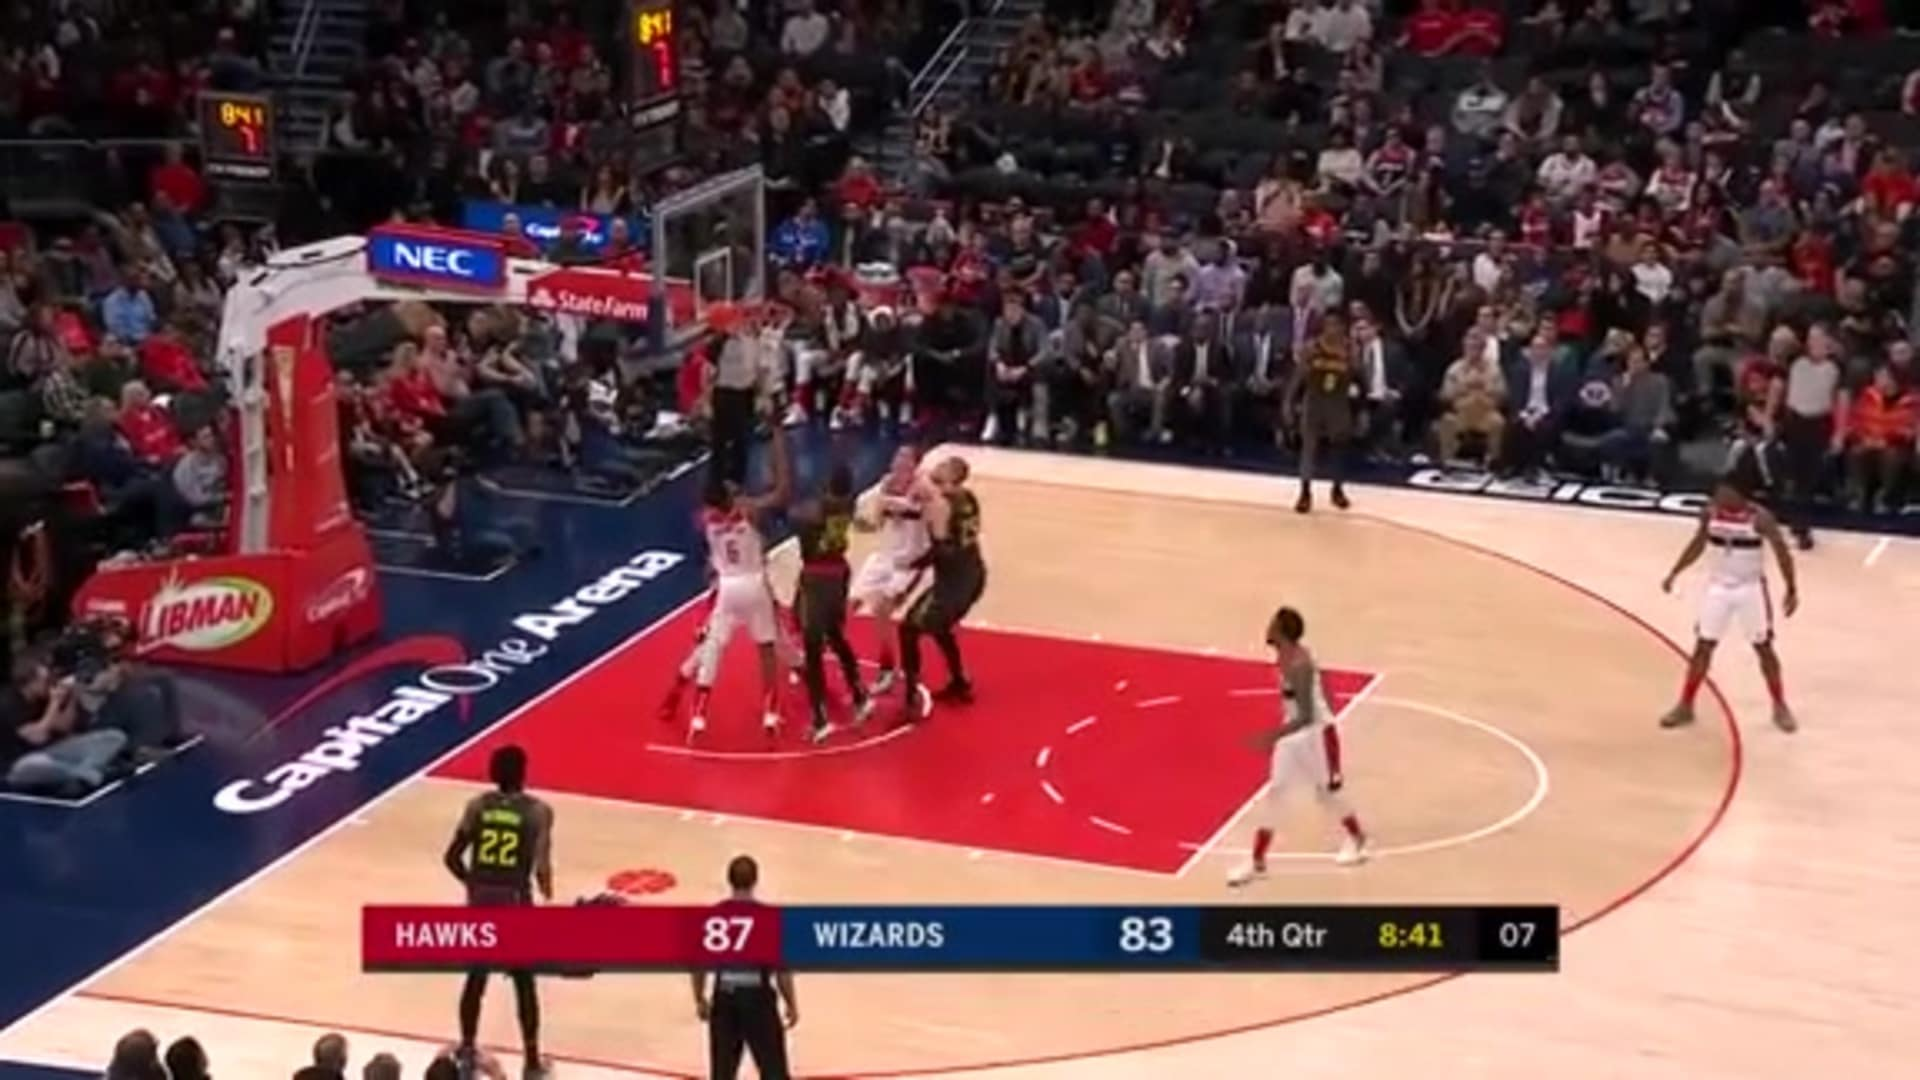 Collins Puts Up Double-Double vs. Wizards